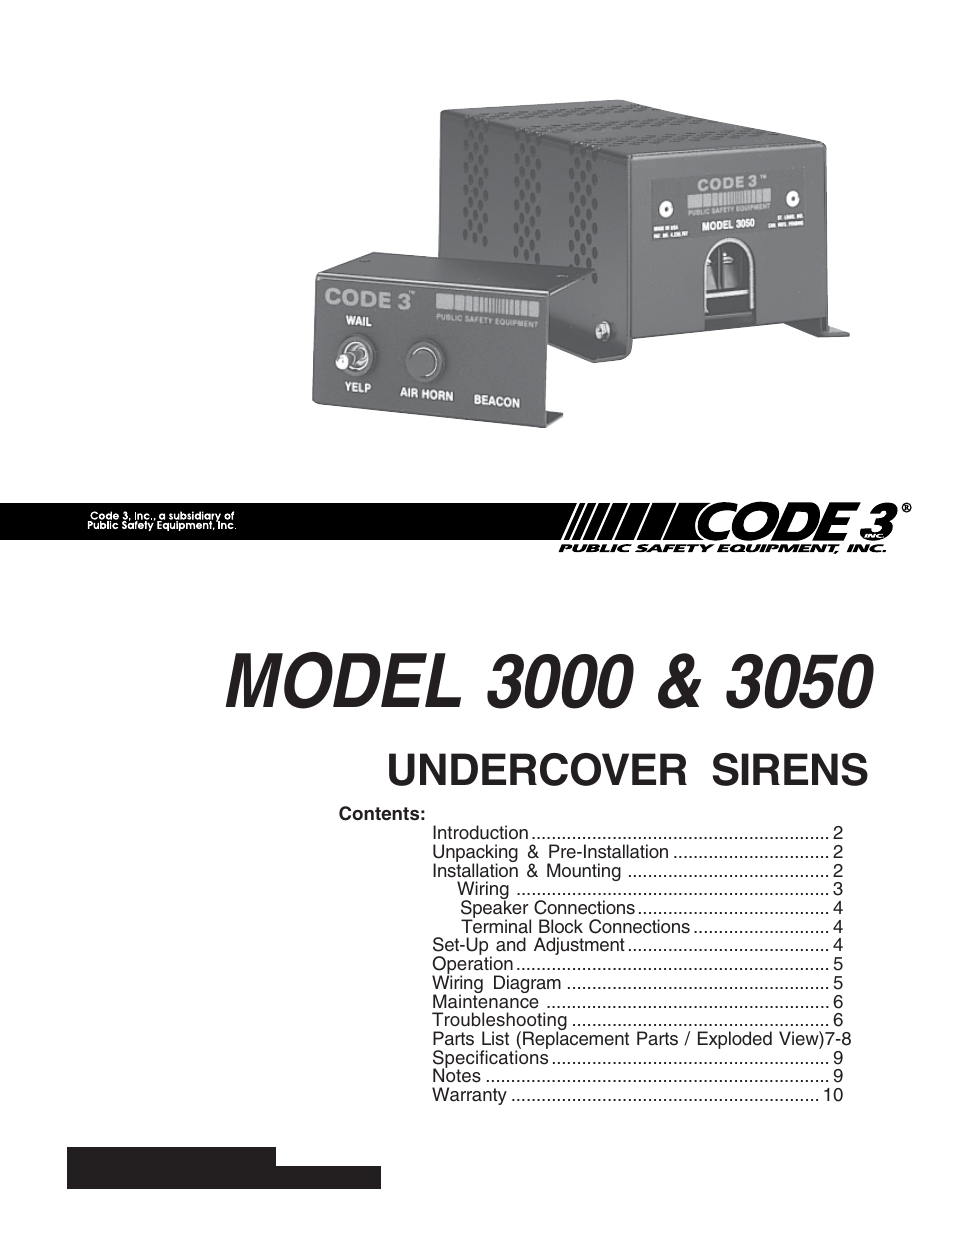 Code 3 Siren Wiring Diagram Detailed Remote Starter Undercover User Manual 10 Pages Alarm Start